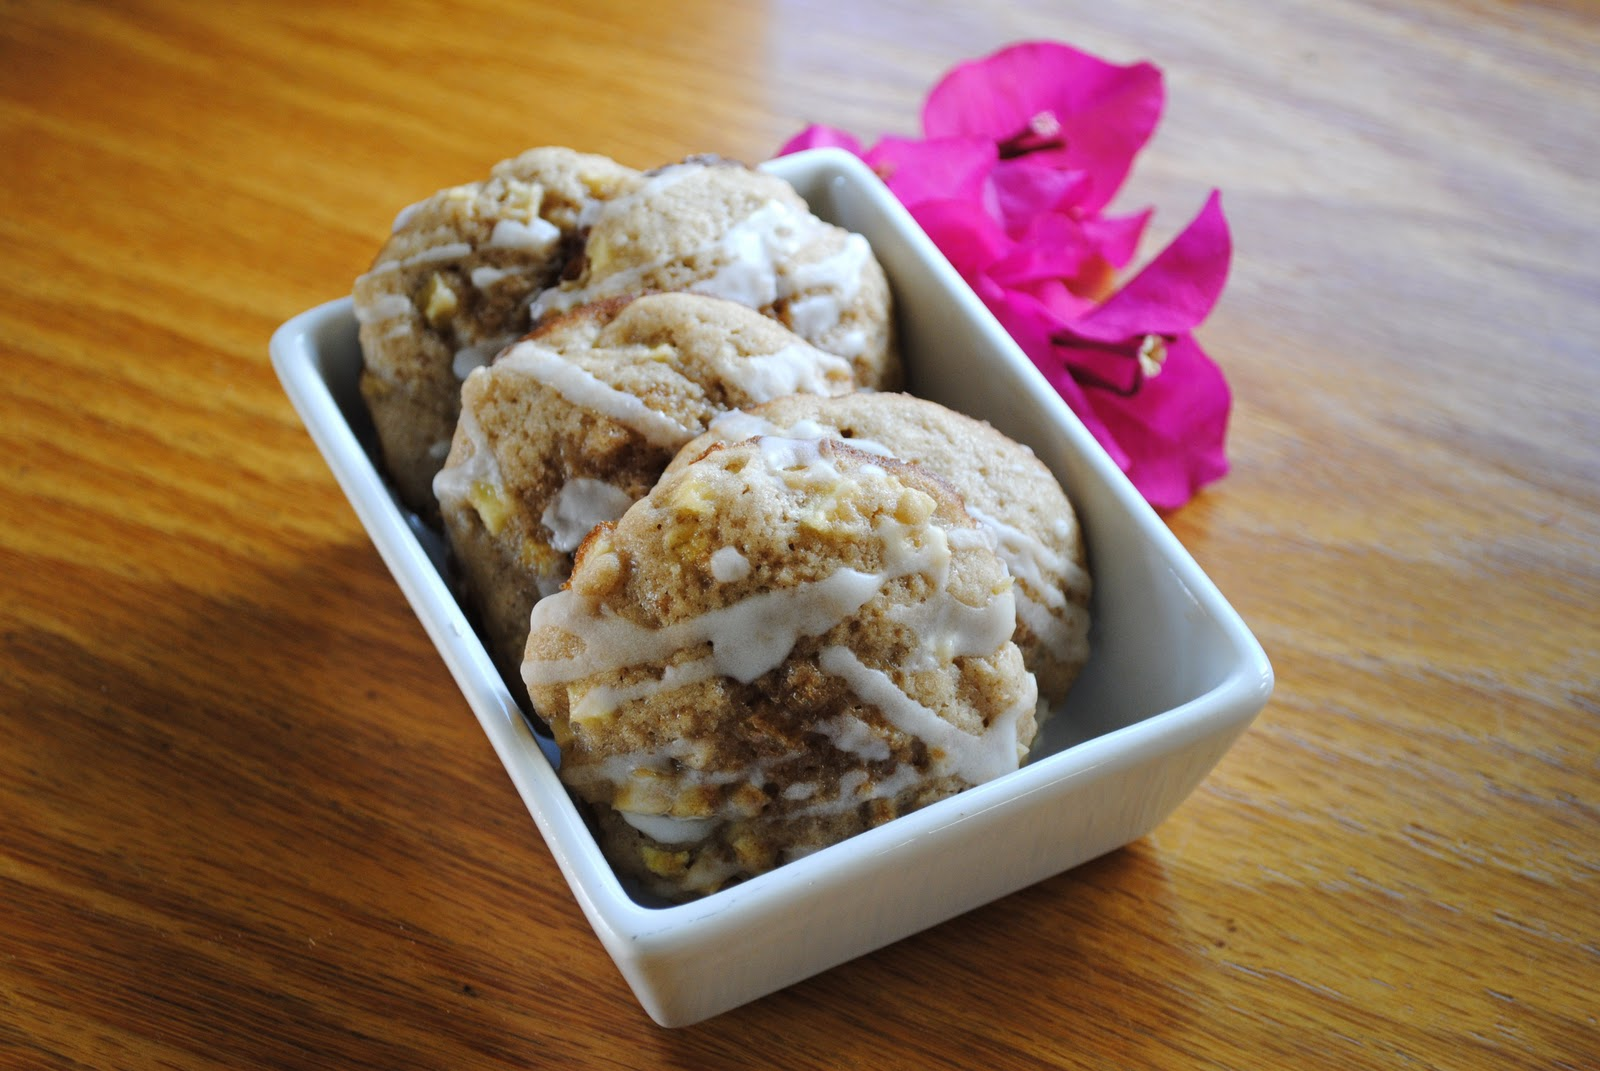 Beti Vanilla: Apple Cinnamon Cookies